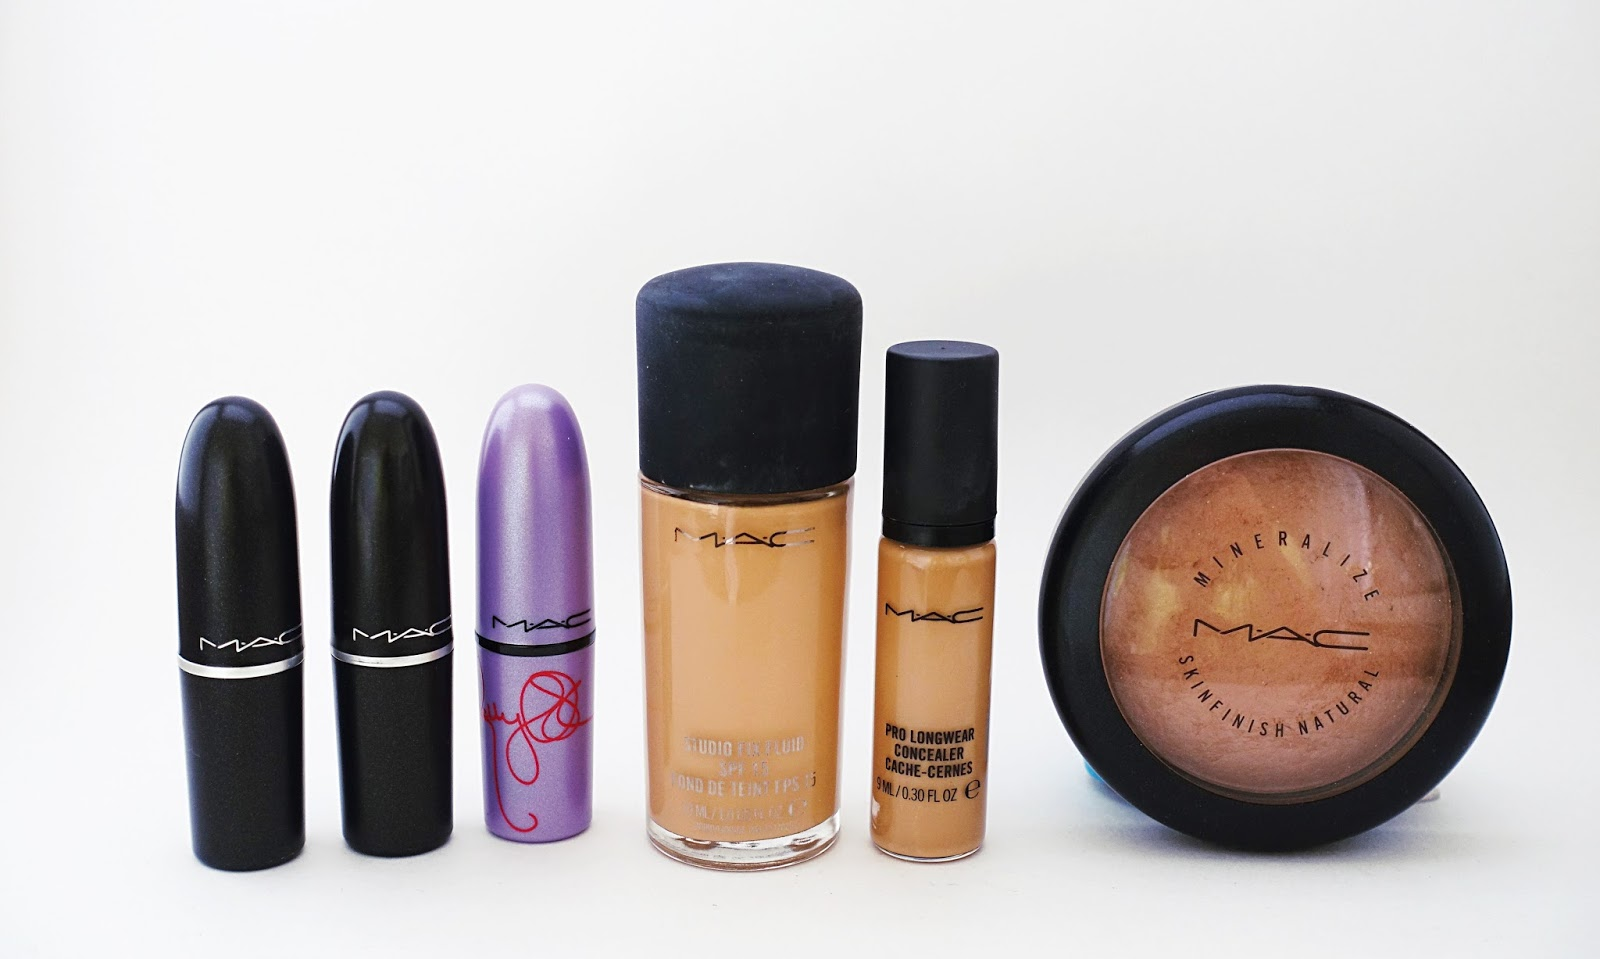 mac cosmetics, mac, mac makeup, favourite mac products, favorite mac products, mac studio fix fluid foundation, mac pro longwear concealer, mac mineralize skinfinish natural, mac lipsticks, mac lipstick swatches, mac heroine, mac kelly yum yum, mac candy yum yum, mac syrup